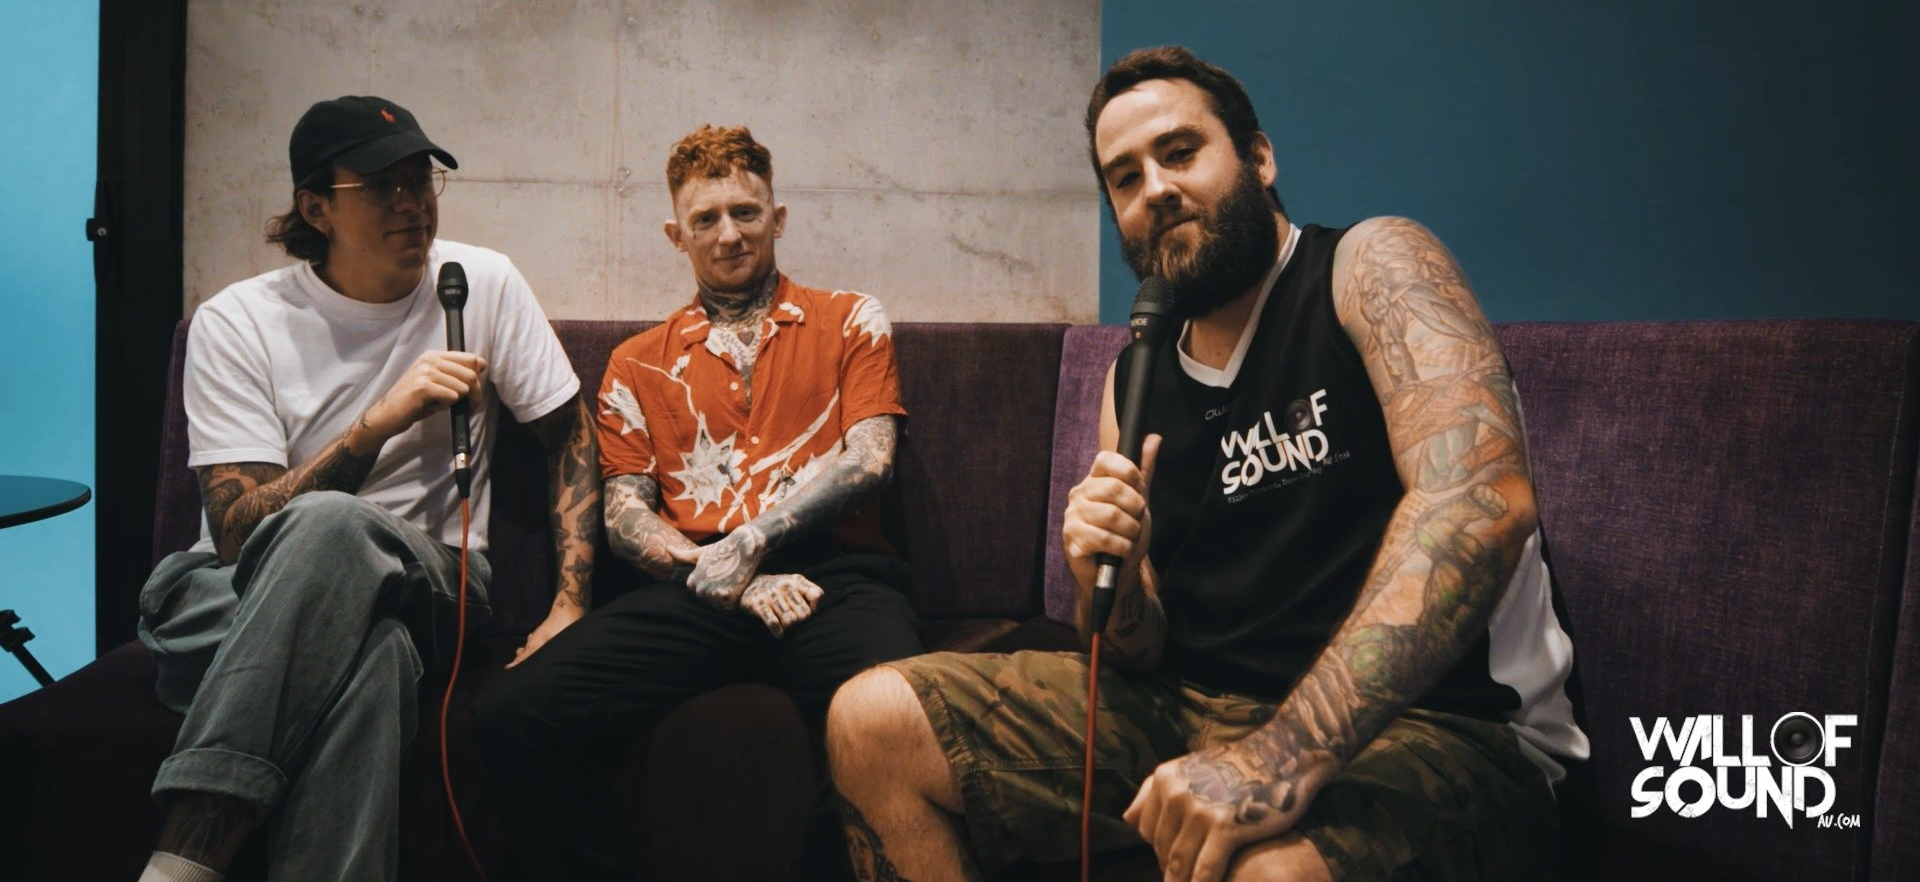 WoS Frank Carter & The Rattlesnakes IV 2020